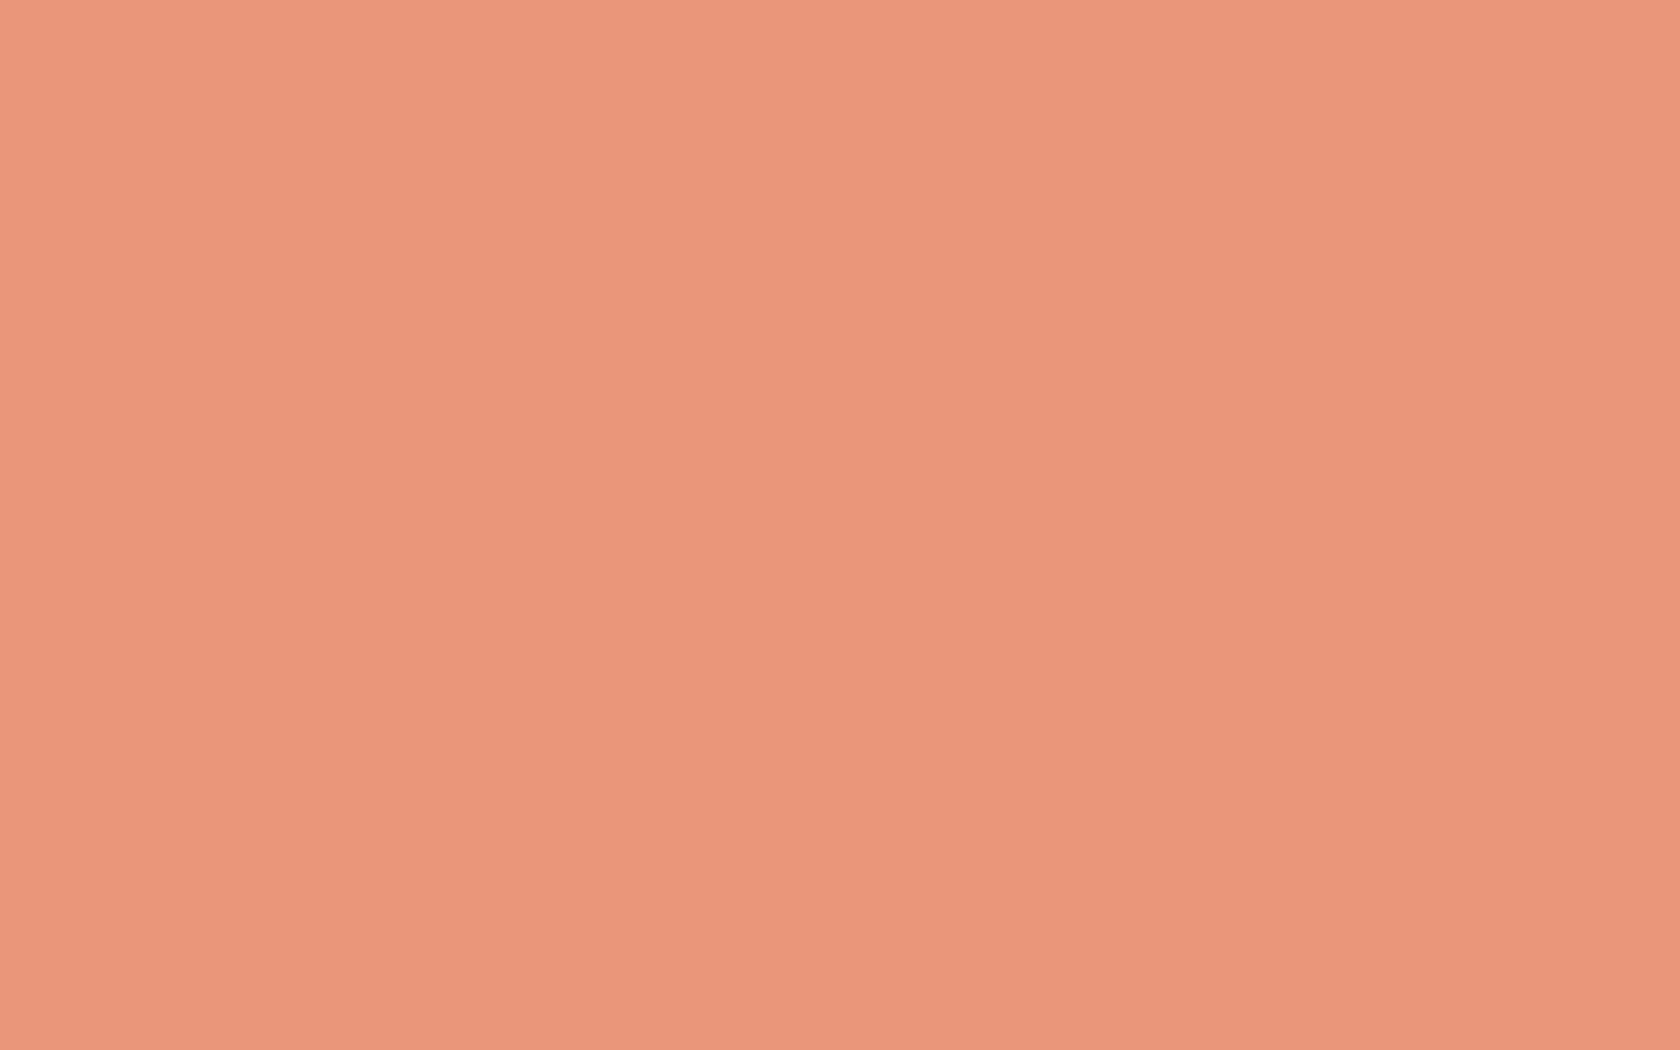 Salmon Color Wallpaper - WallpaperSafari